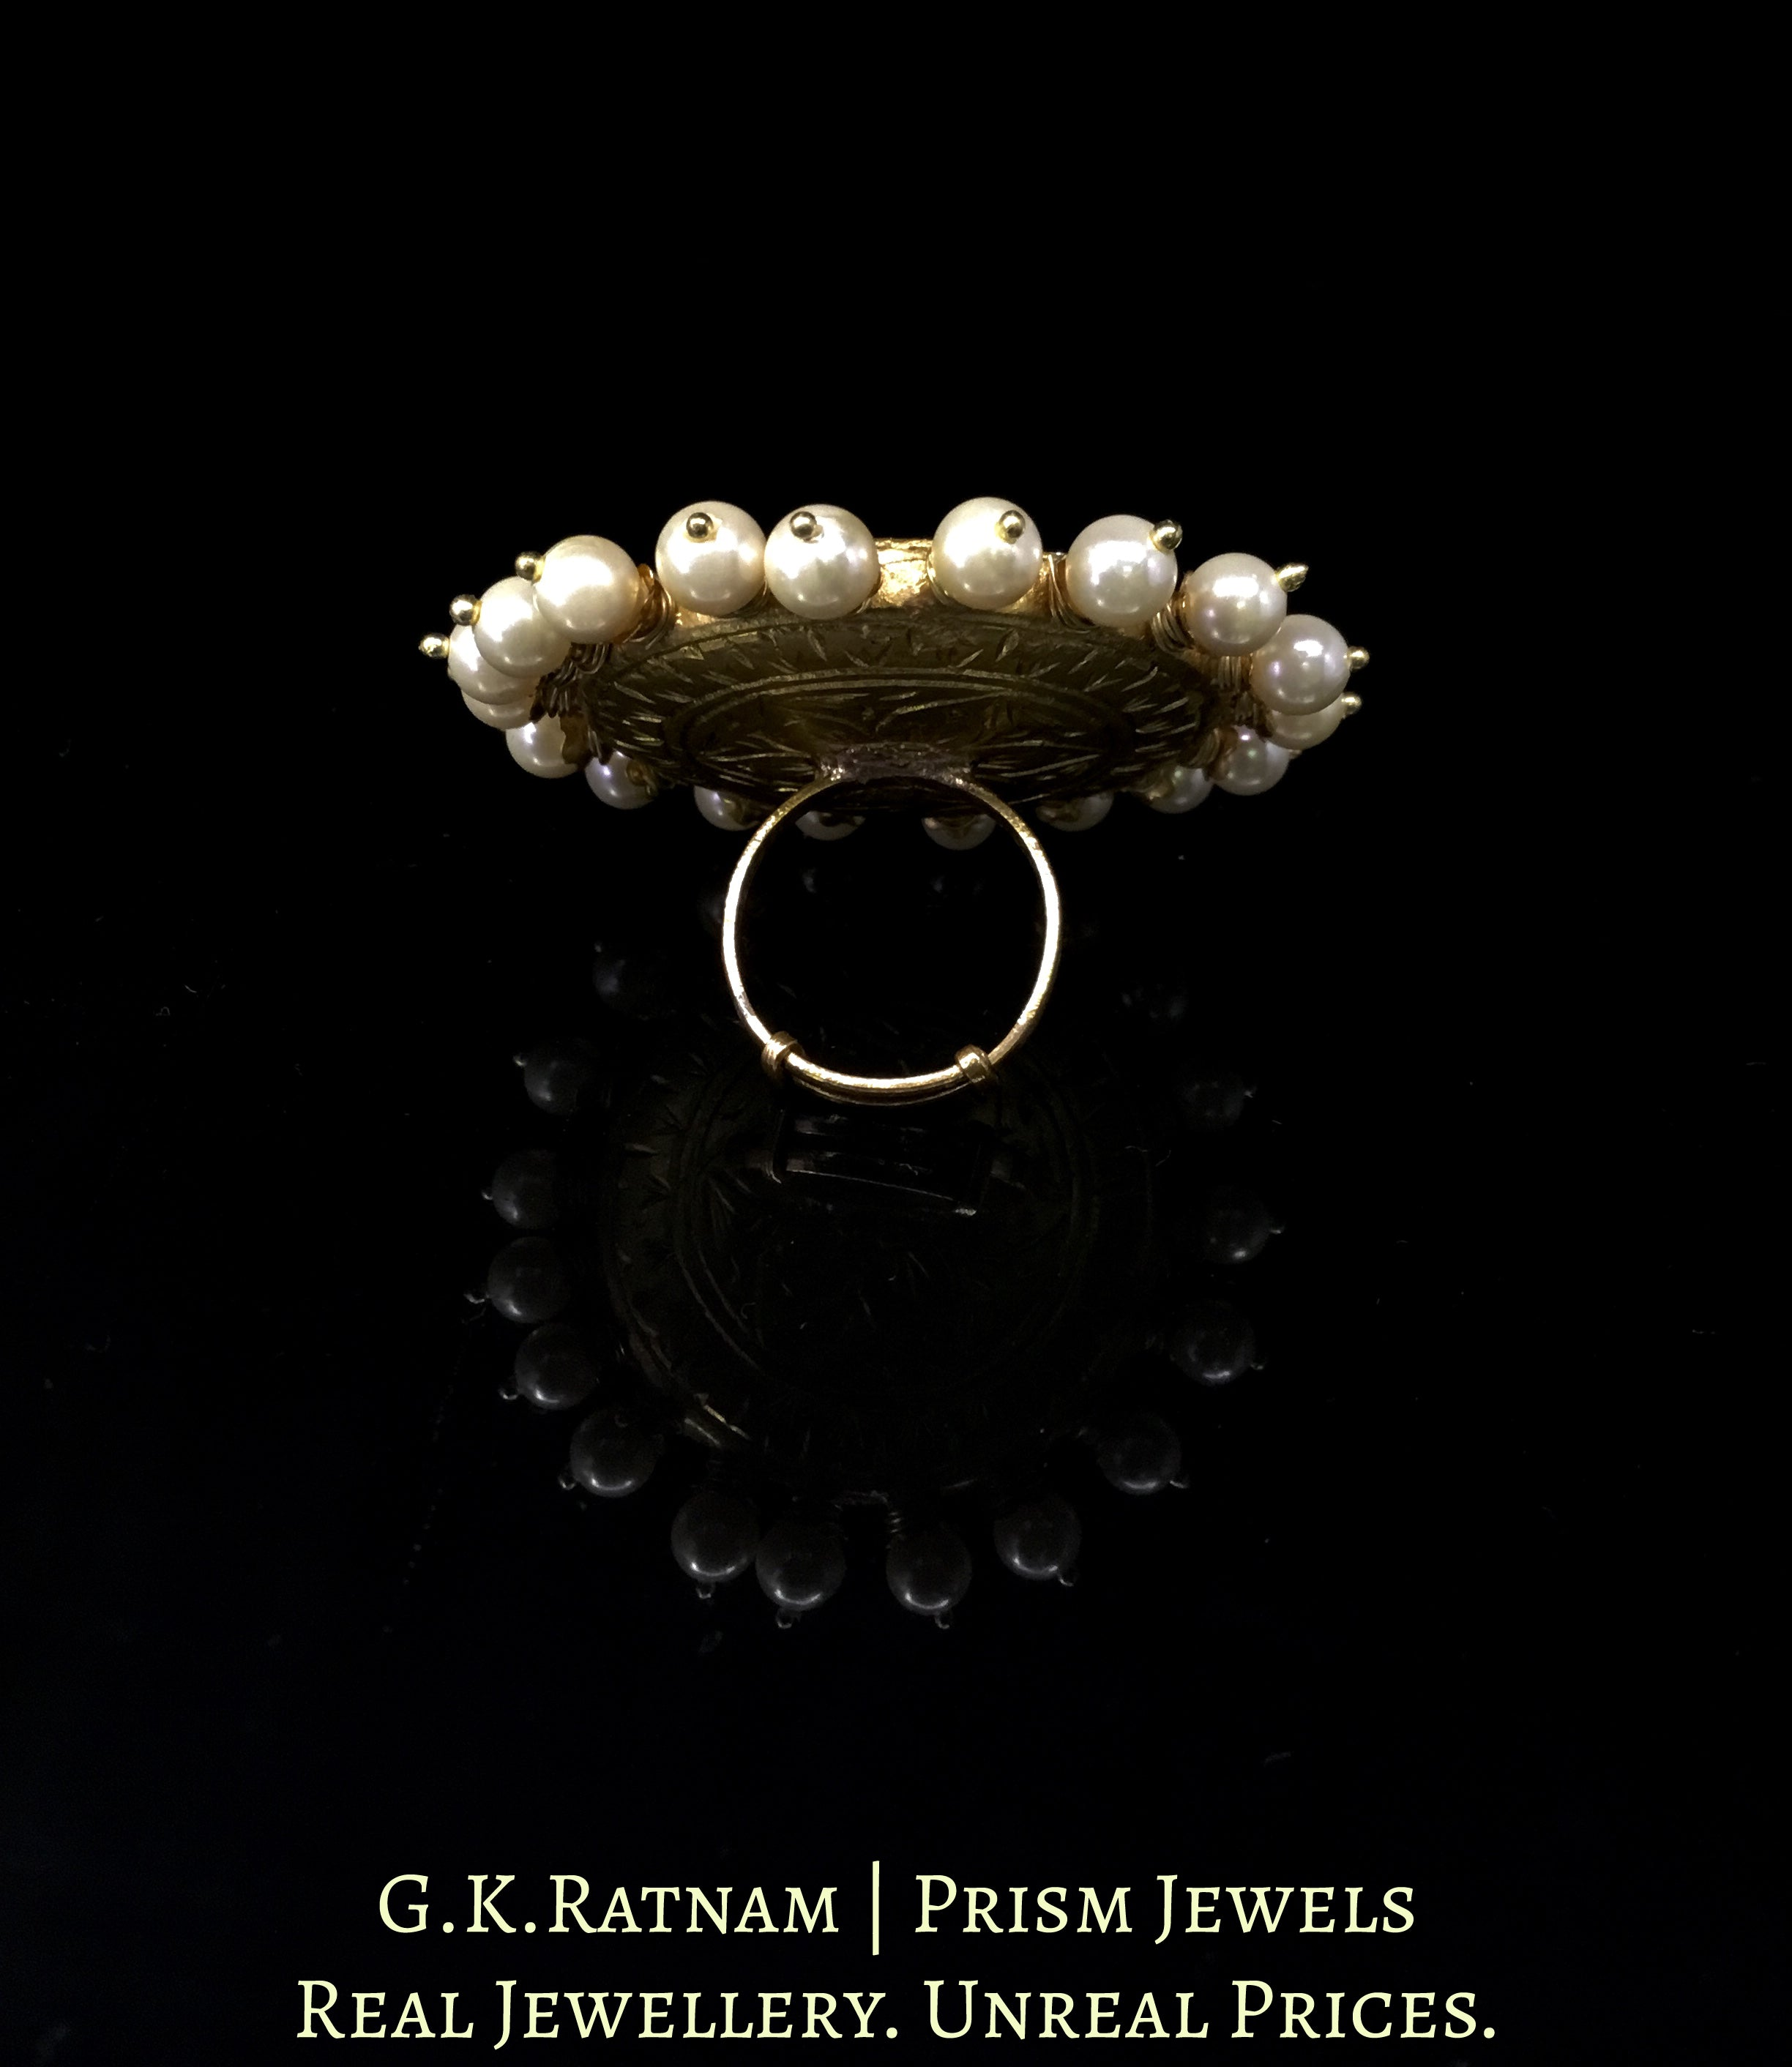 23k Gold and Diamond Polki Navratna Ring with Pearl Spikes